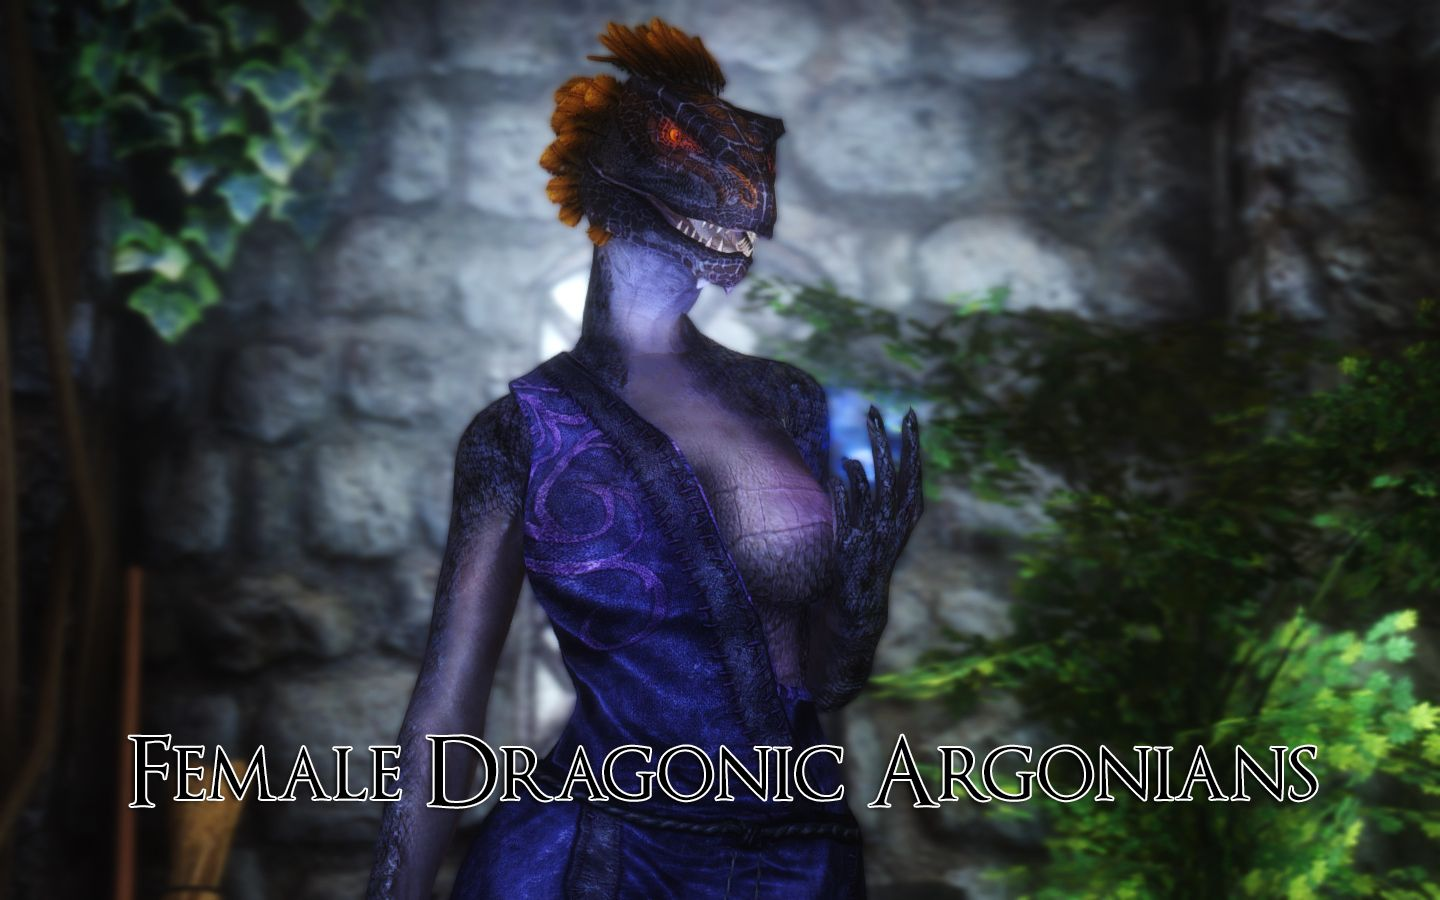 Female Dragonic Argonian Textures Cbbe And Unp Skyrim Se In 2019